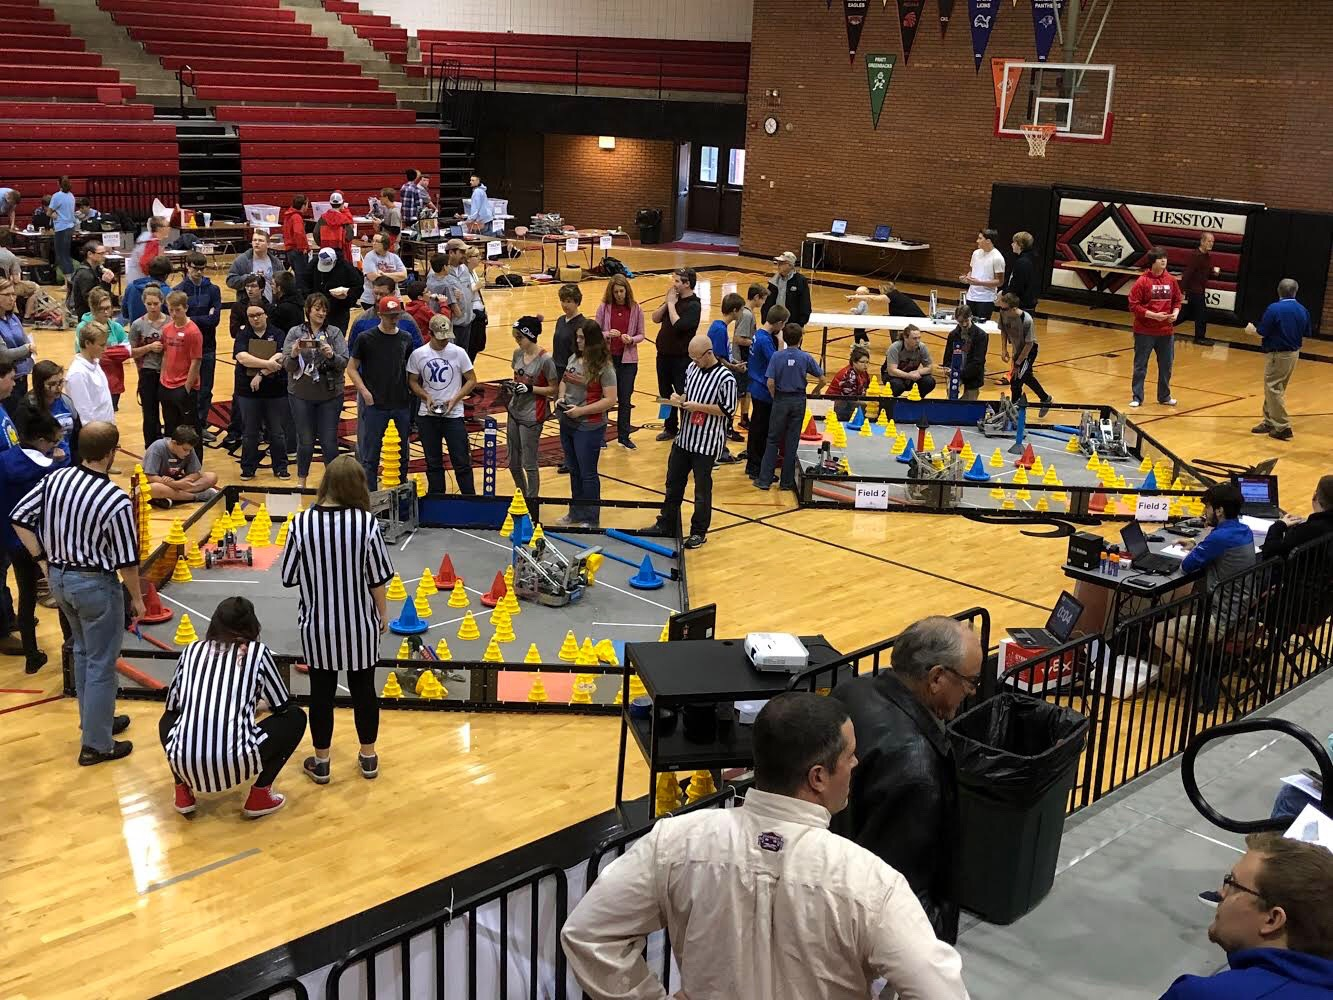 High school students compete at a regional VEX Robotics Competition in Hesston in November. The state-qualifying VEX event will be held at WSU on Feb. 23, along with the state VEX IQ Challenge, an event for younger children.